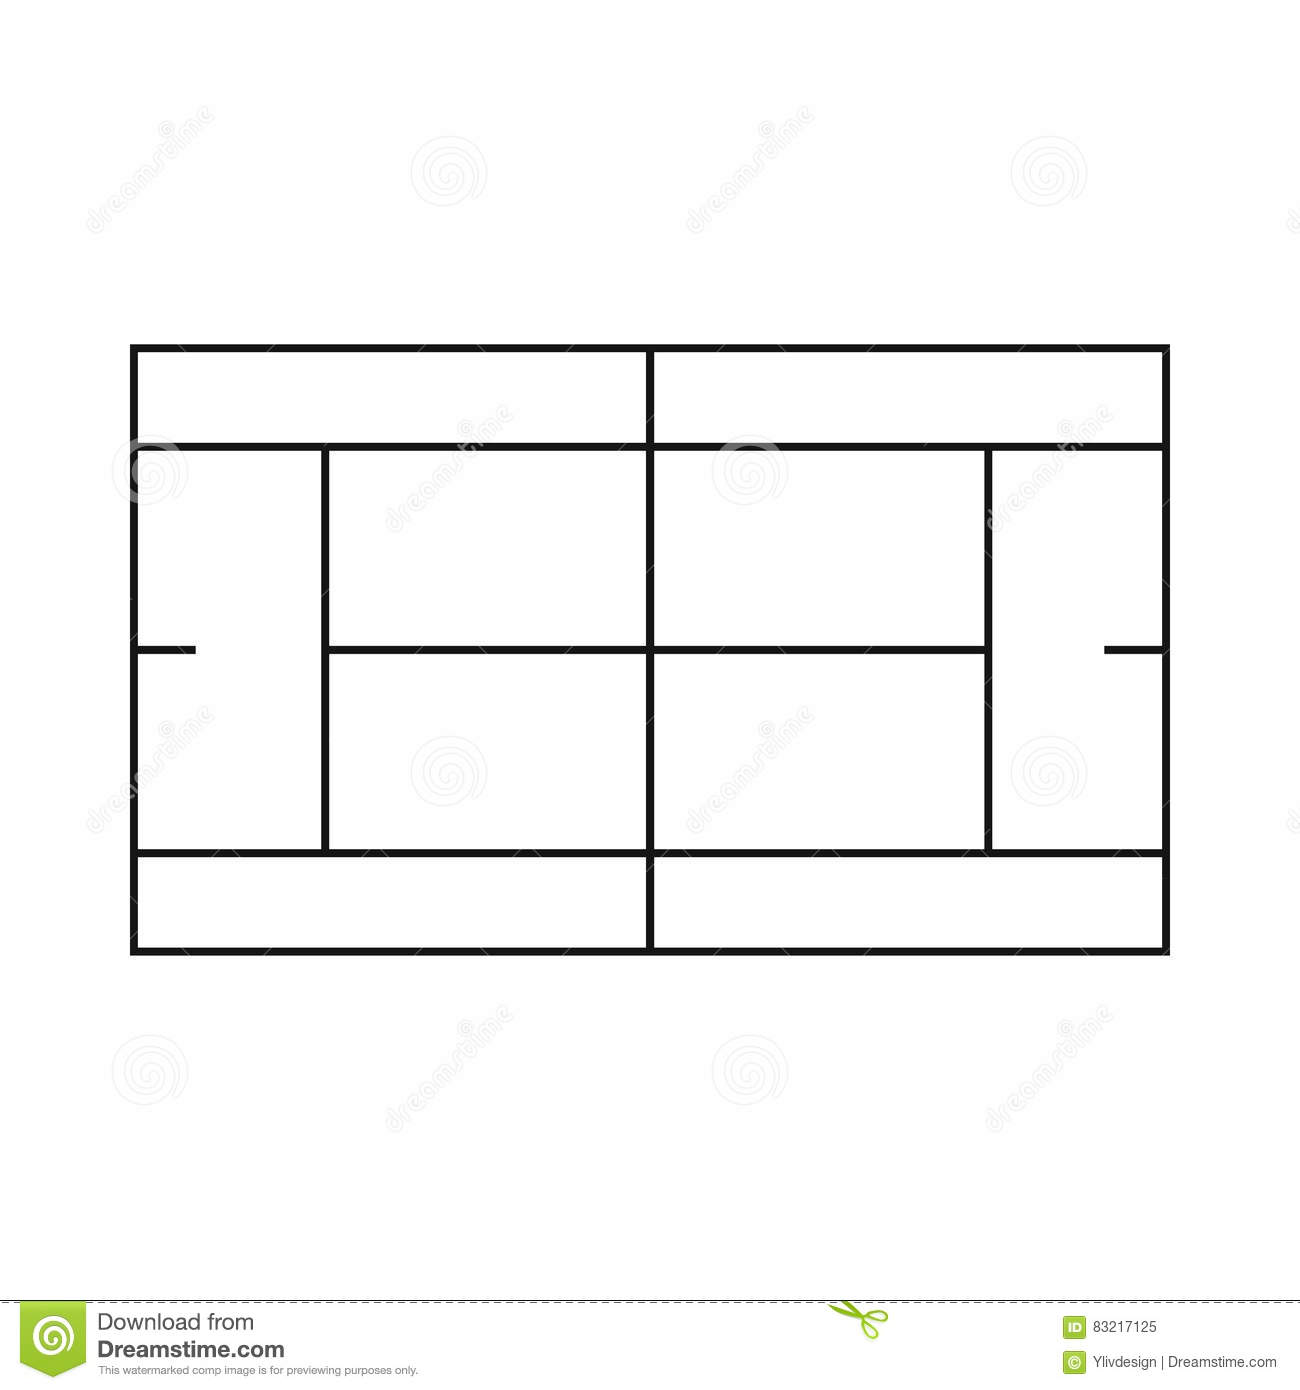 Tennis court diagram vector imgkid the image